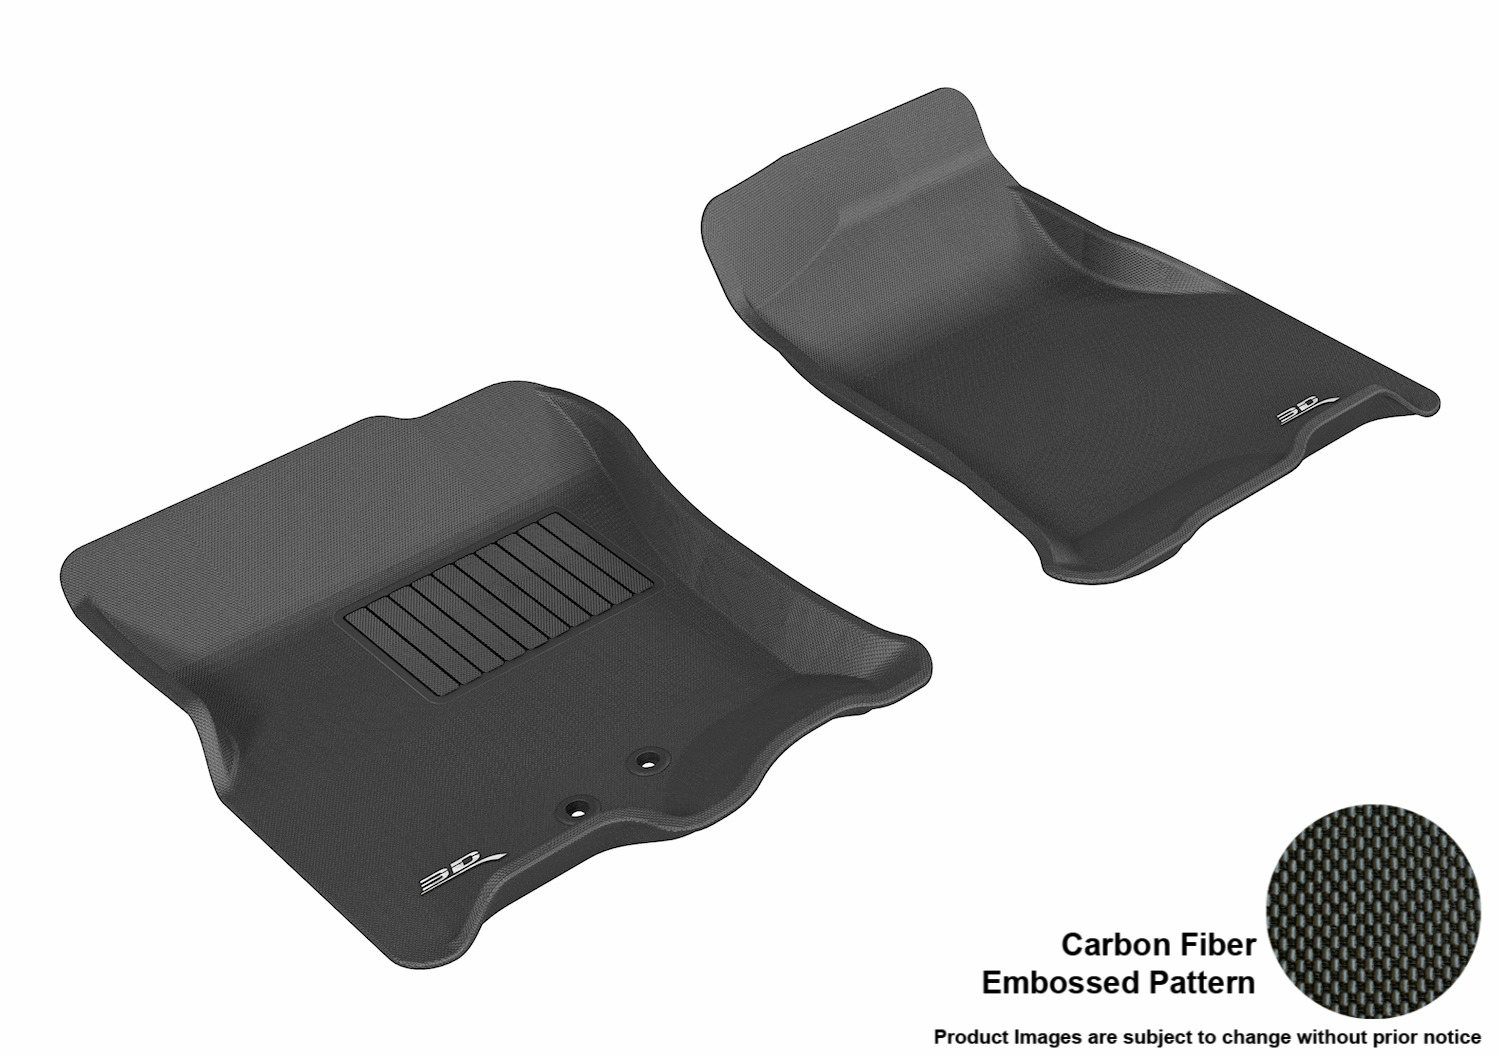 2007 2017 Ford Expedition 3d Maxpider Floor Mats Fast